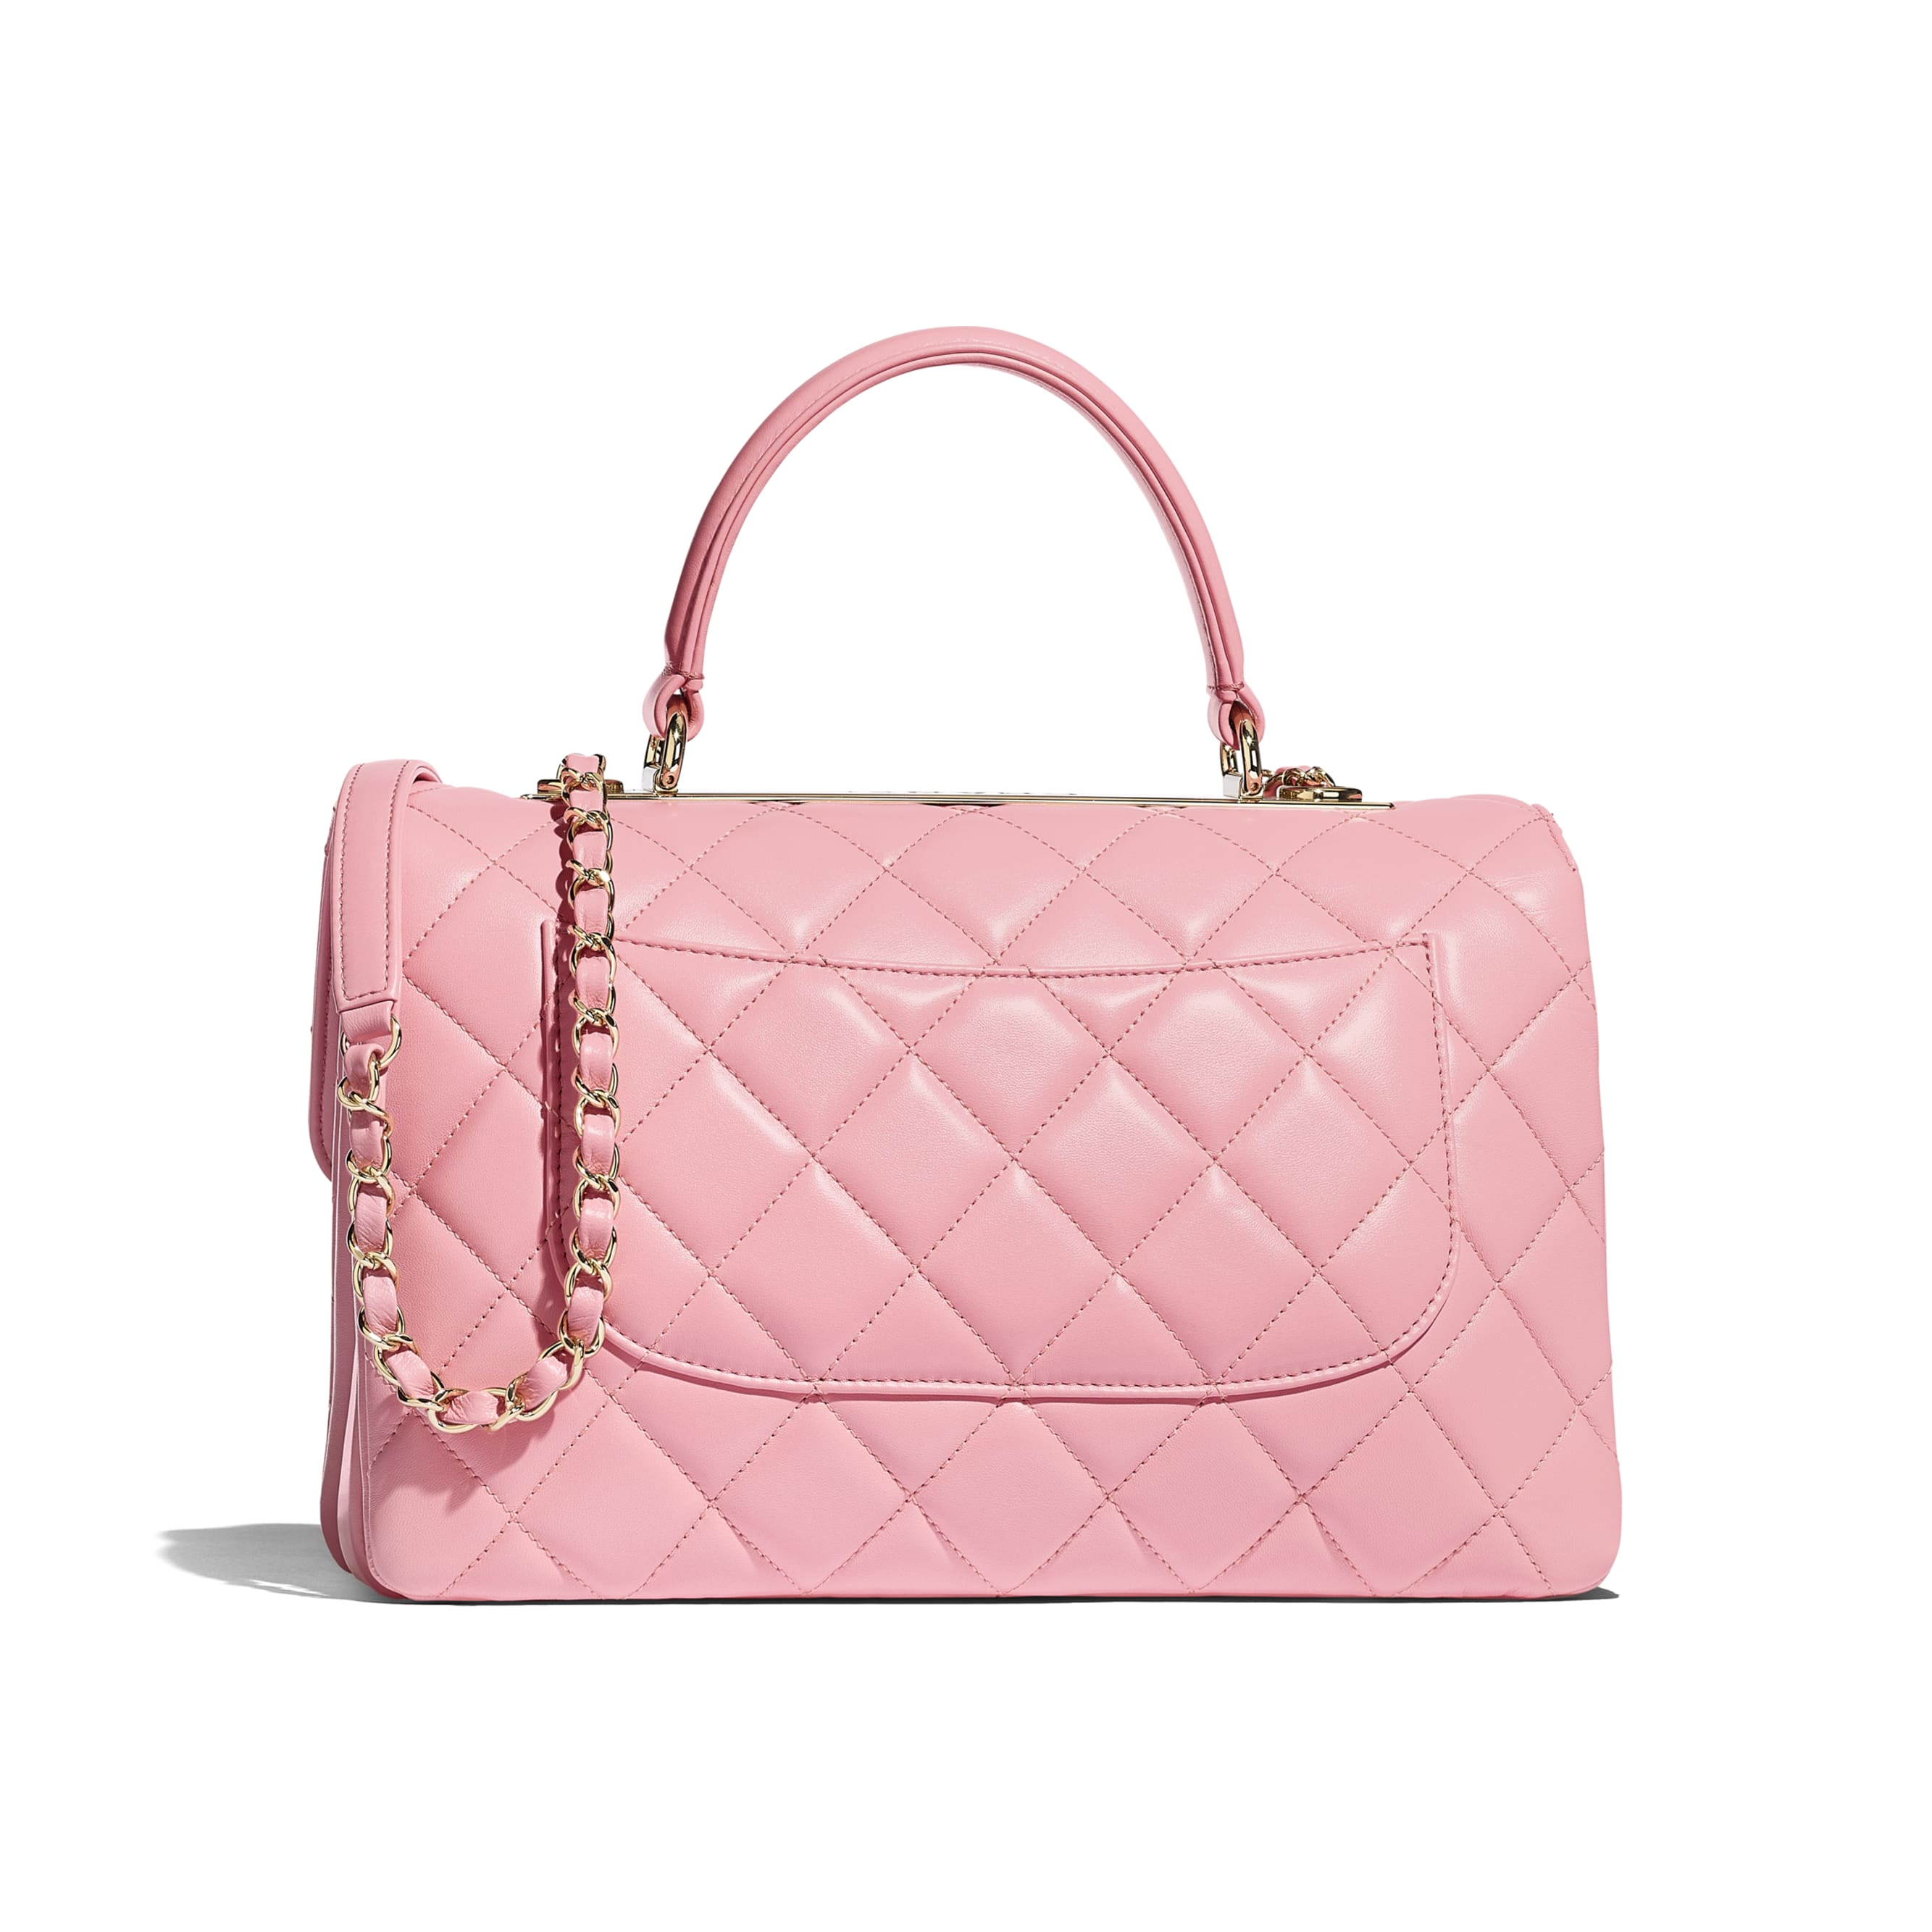 Flap Bag with Top Handle - Pink - Lambskin & Gold-Tone Metal - Alternative view - see standard sized version